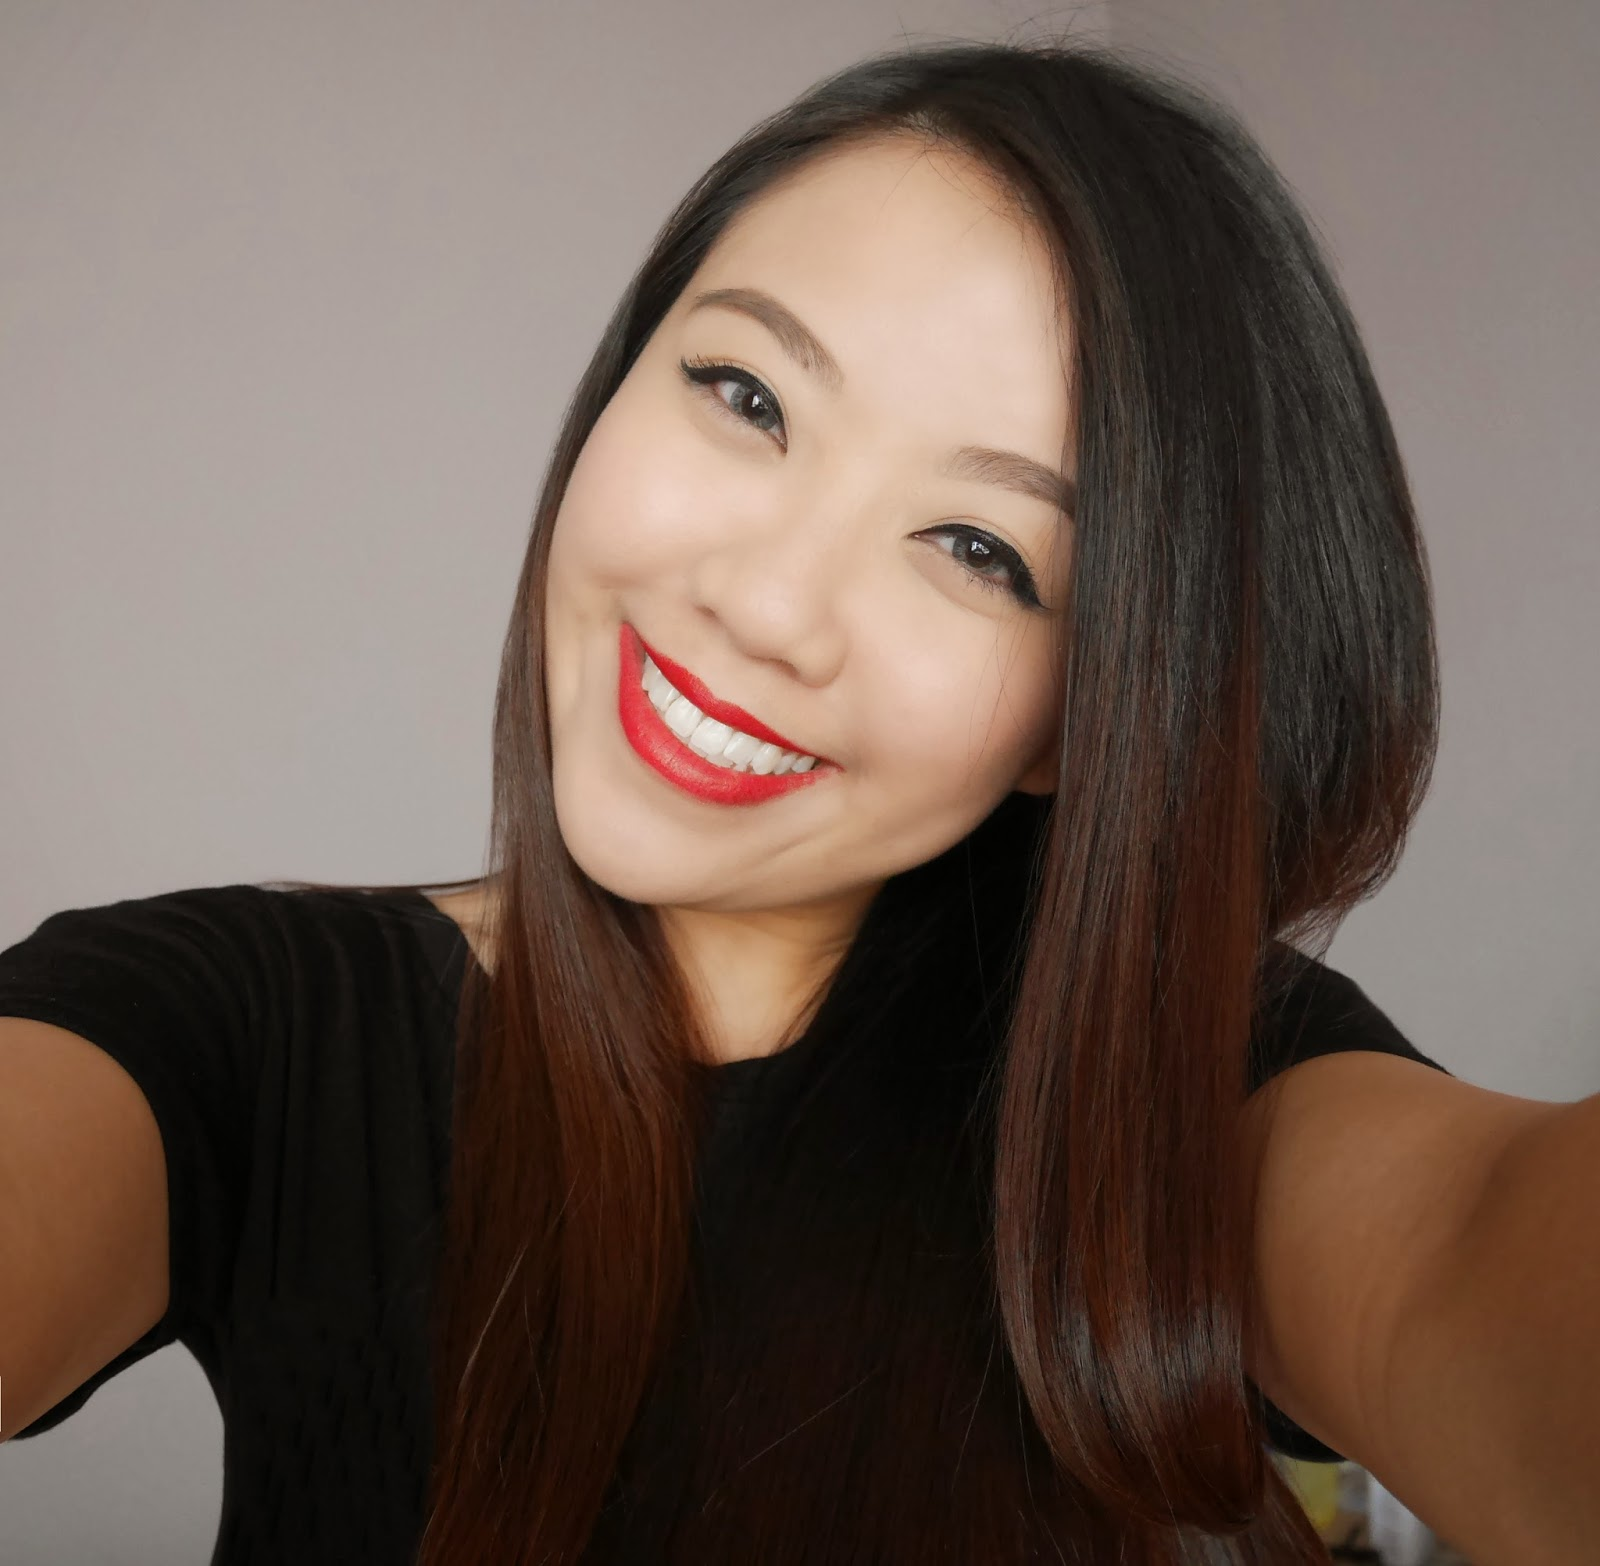 Colored contacts for asians congratulate